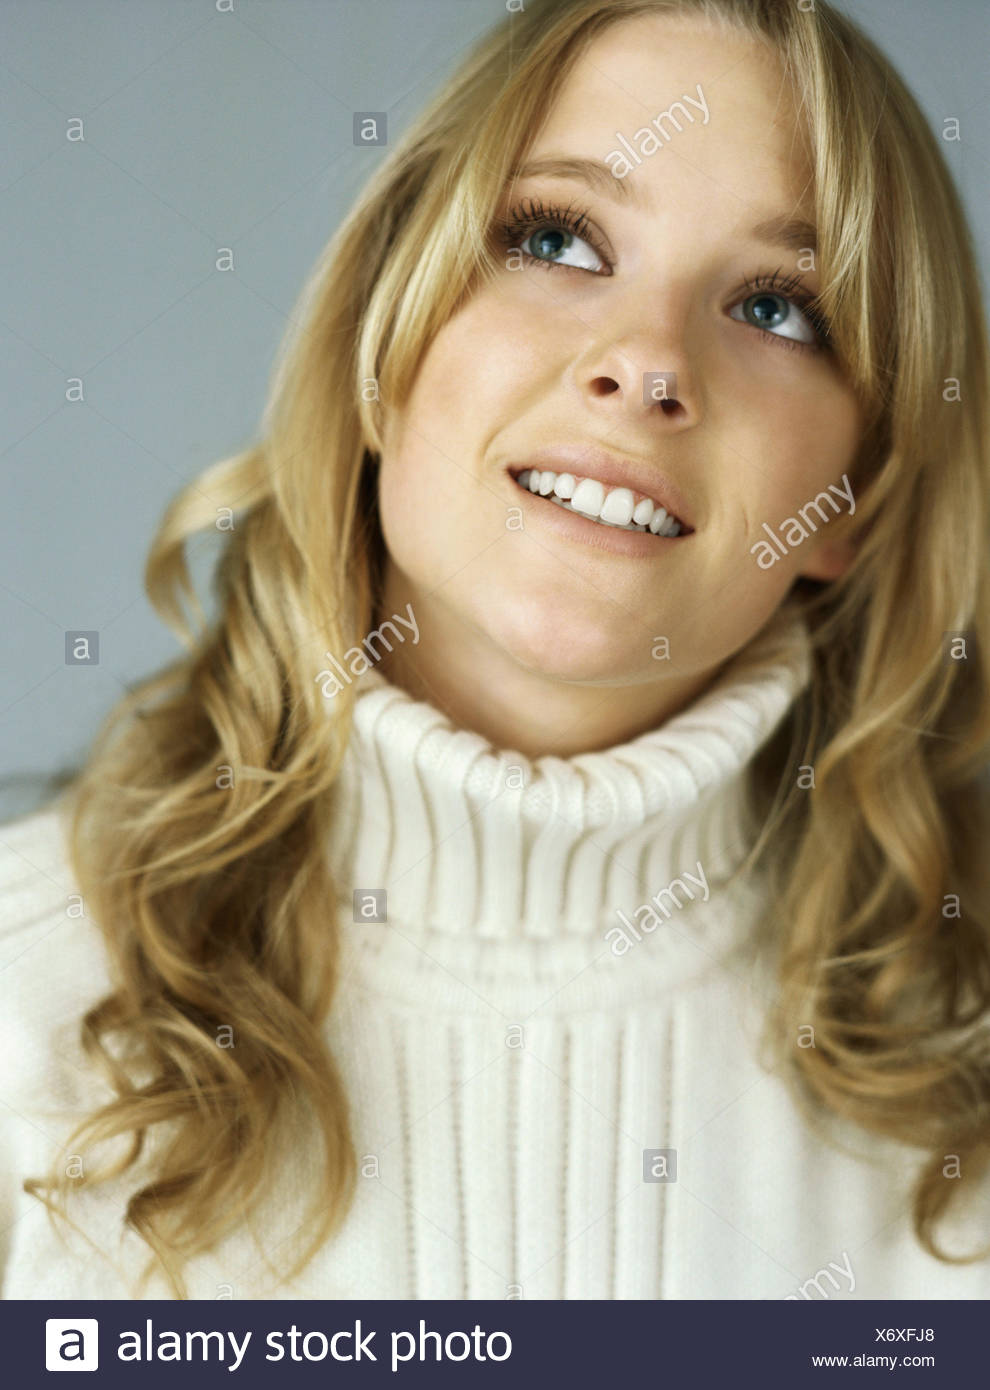 Teenage girl looking up in thought, portrait - Stock Image